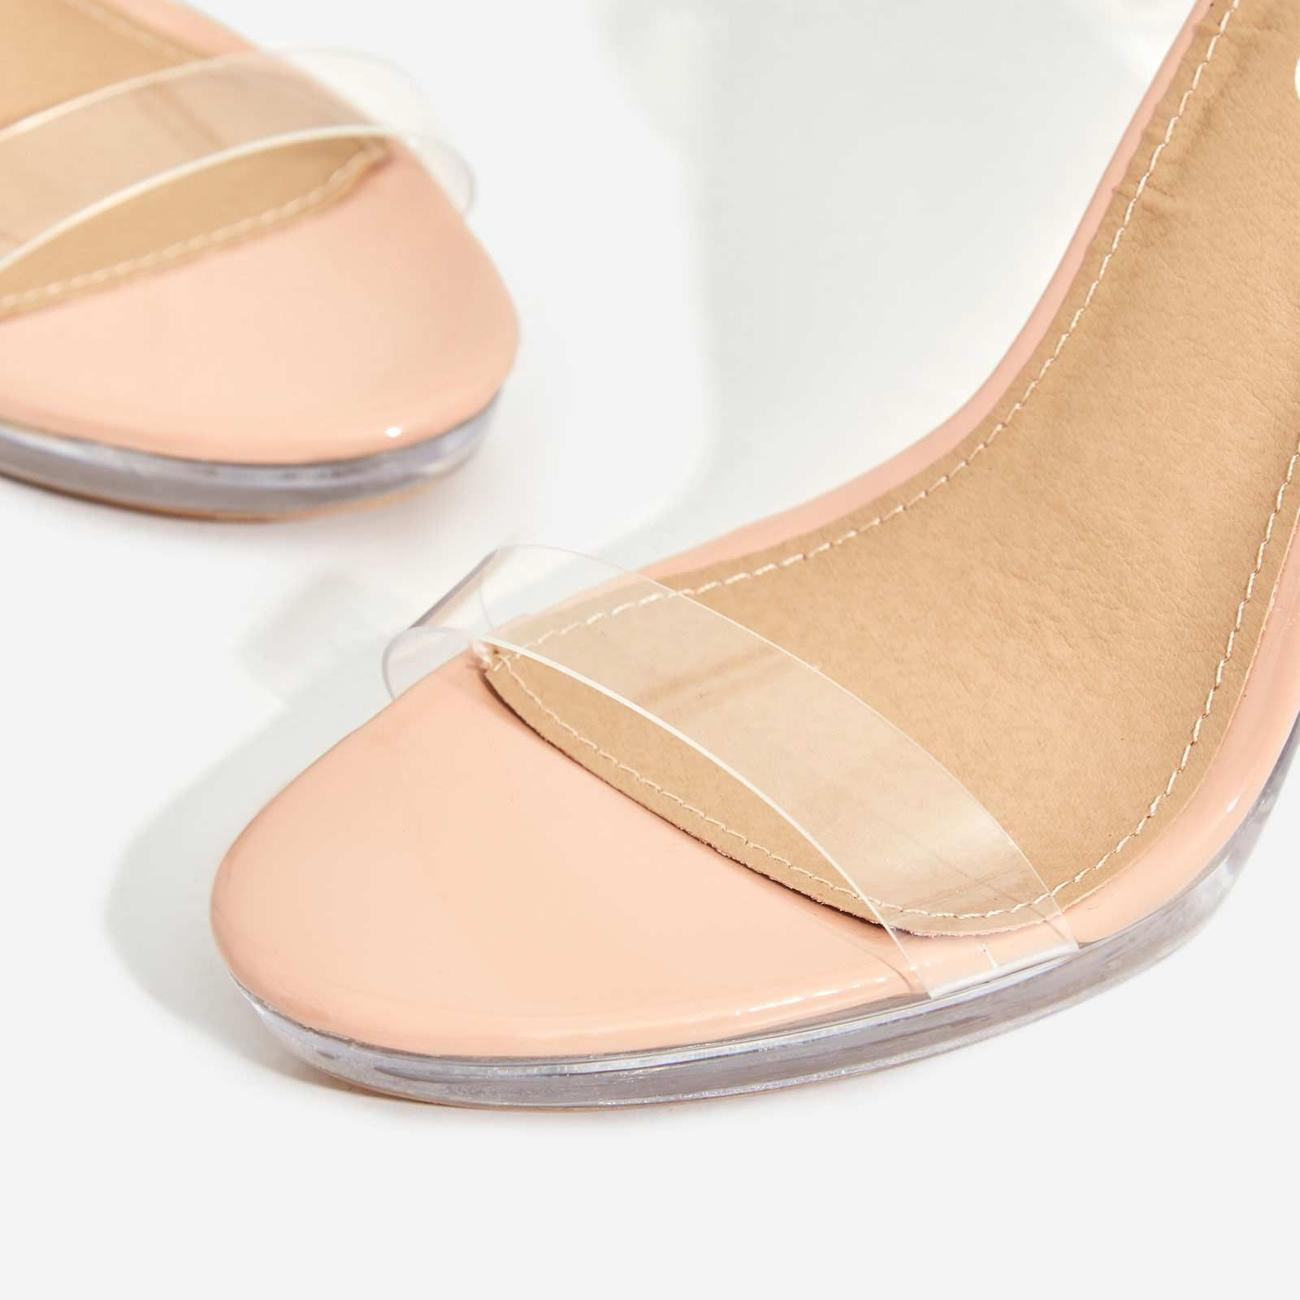 Icy Platform Barely There Perspex Thin Block Clear Heel In Nude Patent Image 5